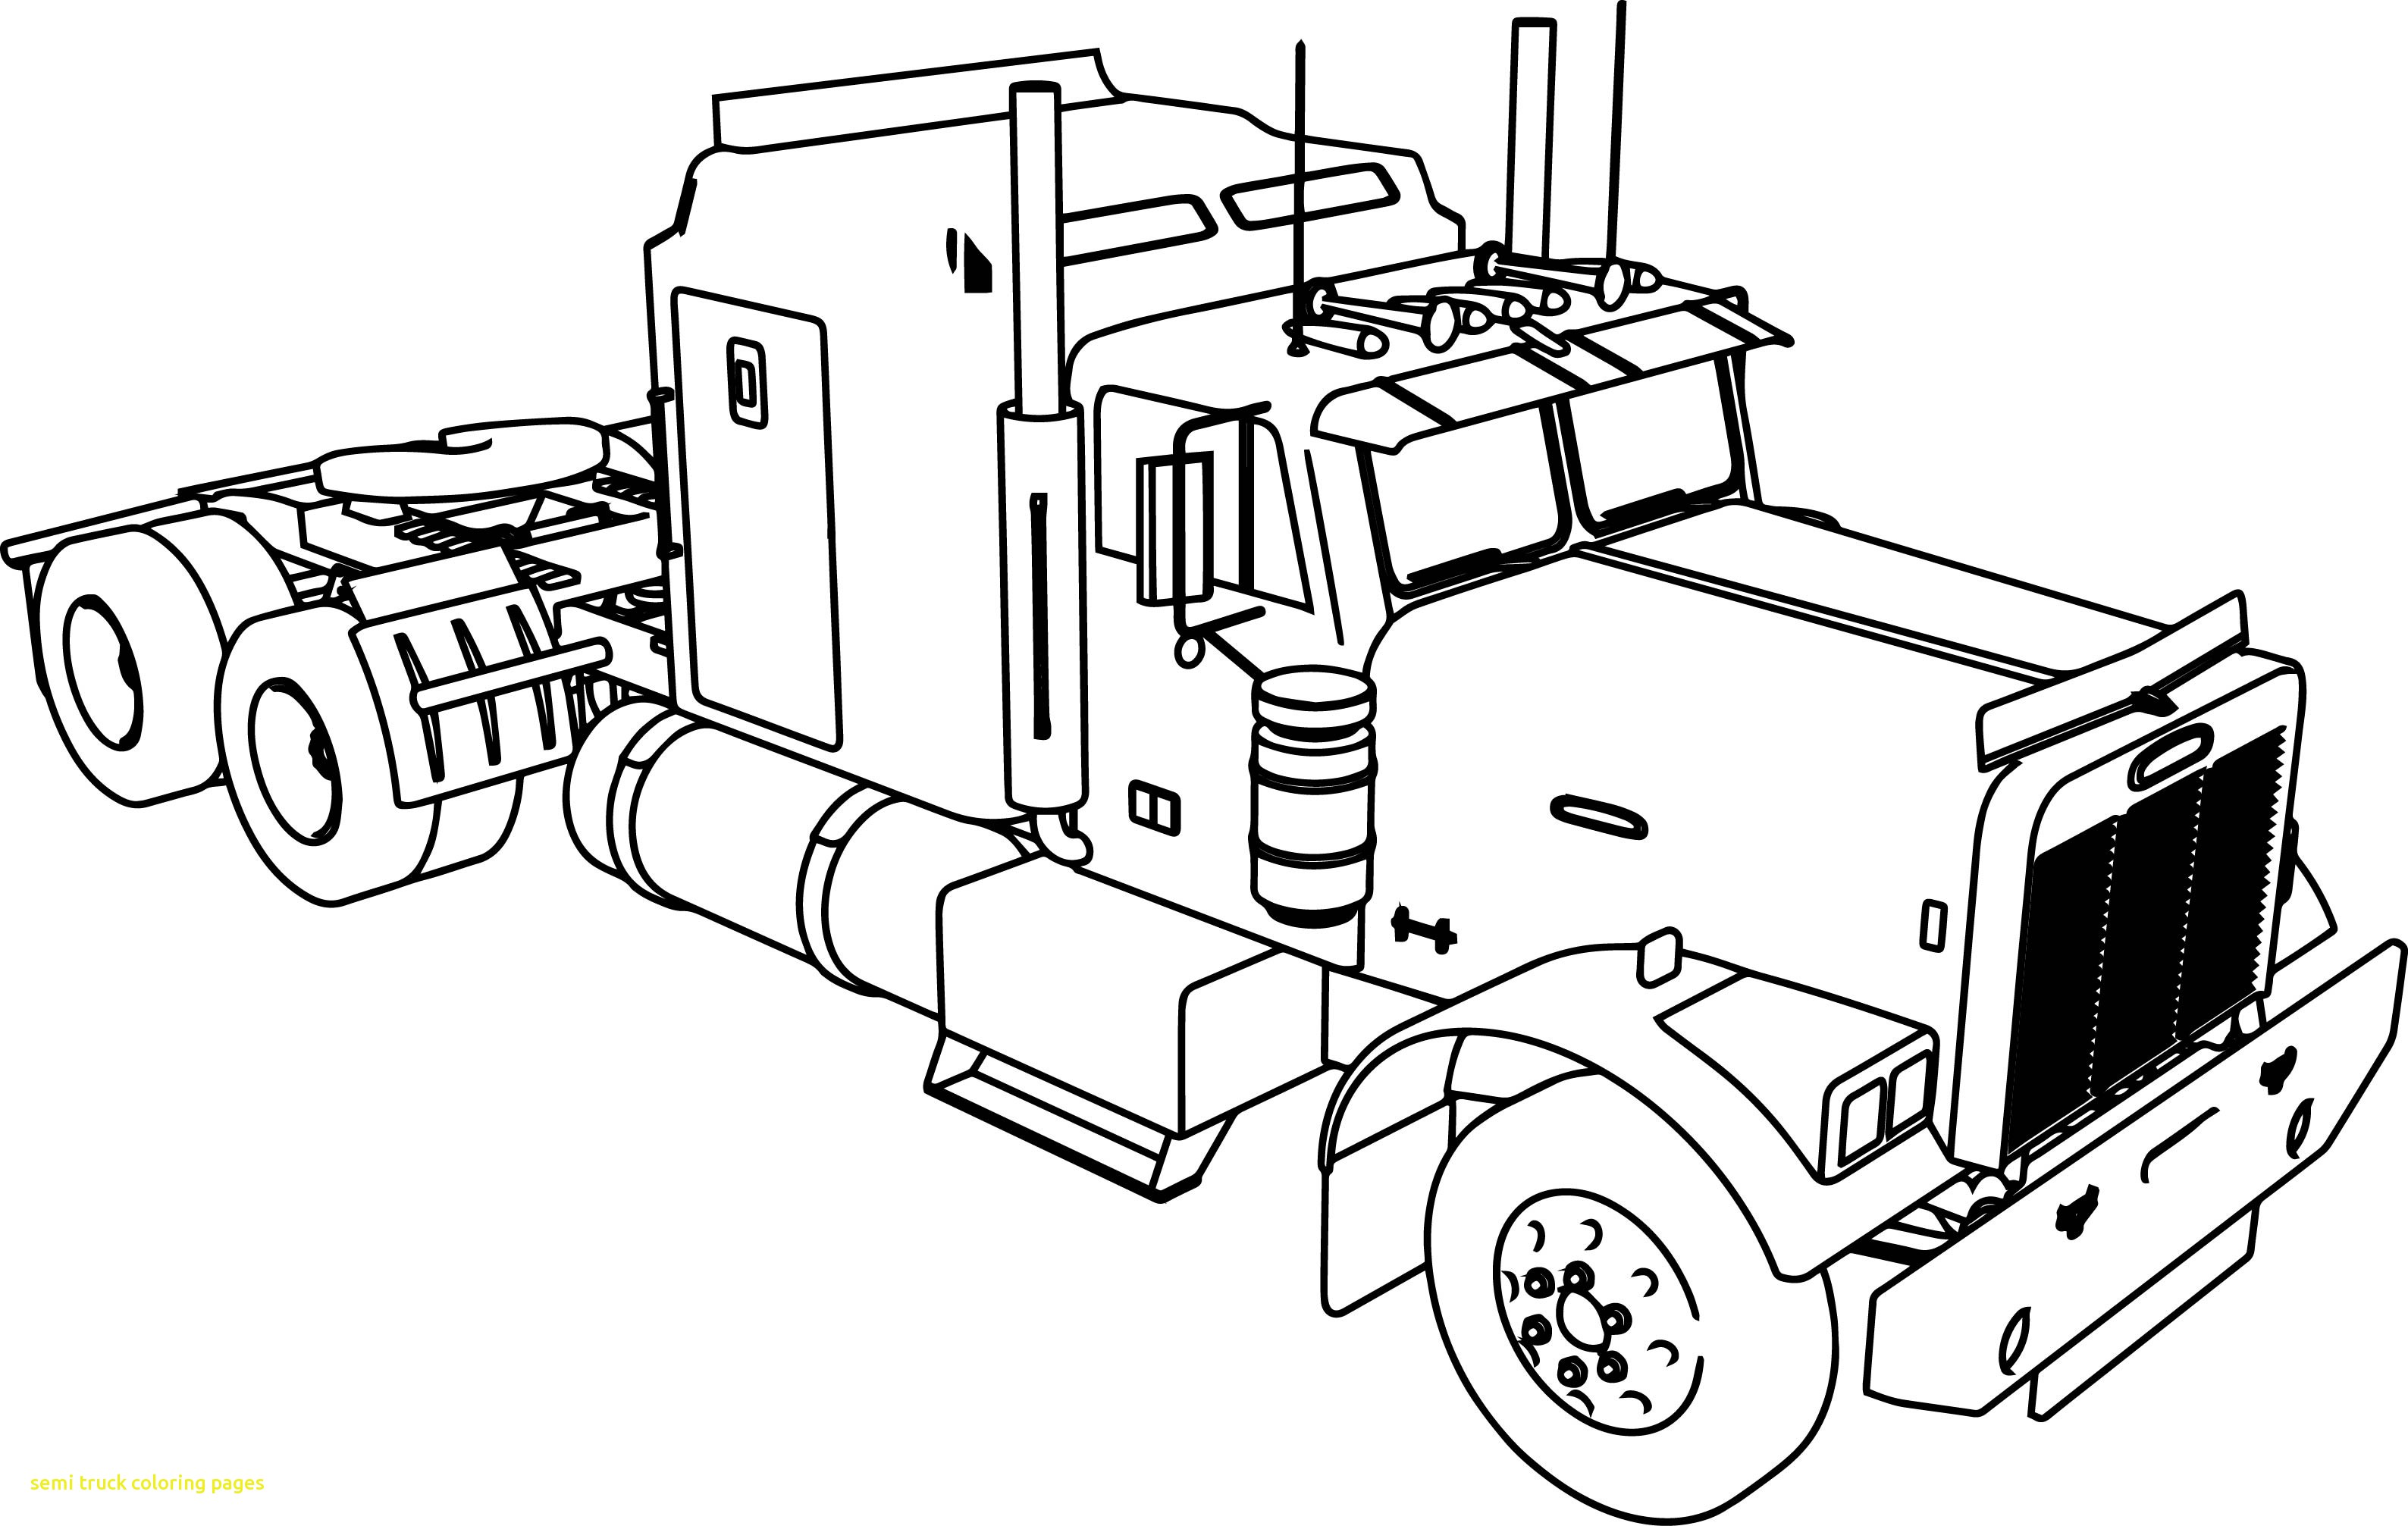 18 Wheeler Coloring Pages At Getdrawings Free Download